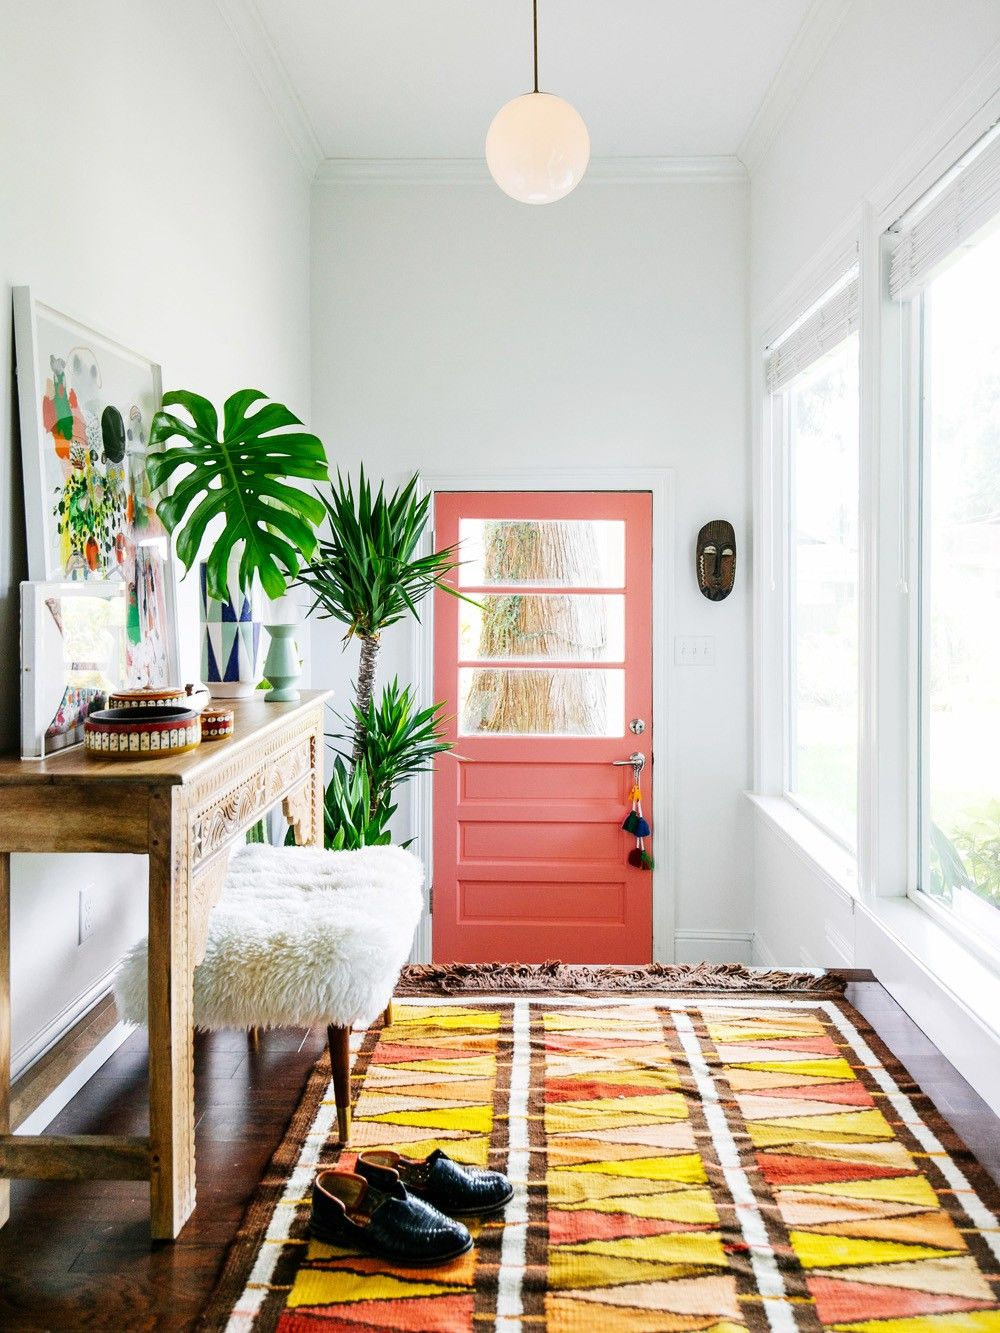 12 Of The Best Interior Design Blogs To Bookmark Right Now Home Decor Mudroom Makeover House Interior